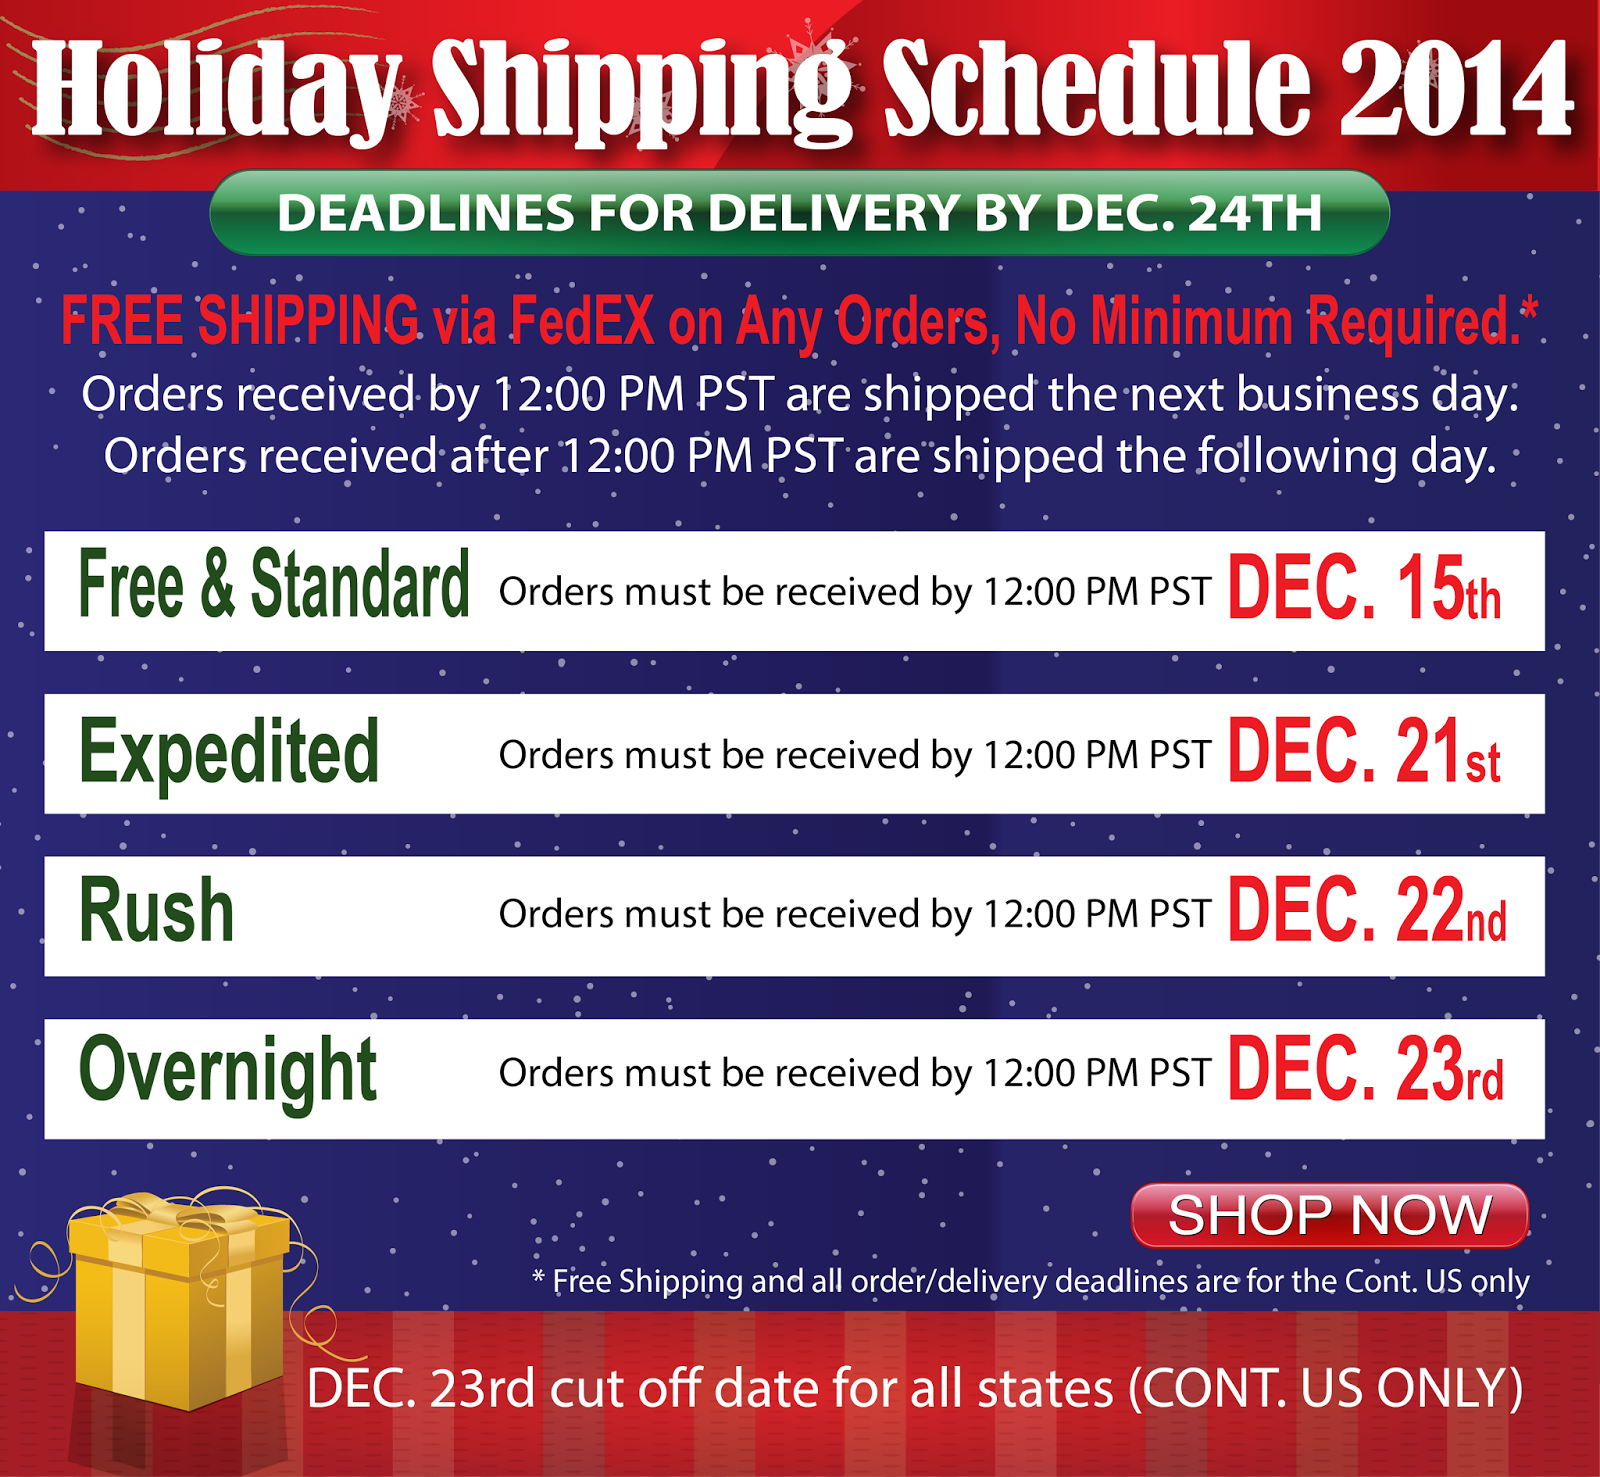 Christmas 2014 Order/Delivery Deadlines